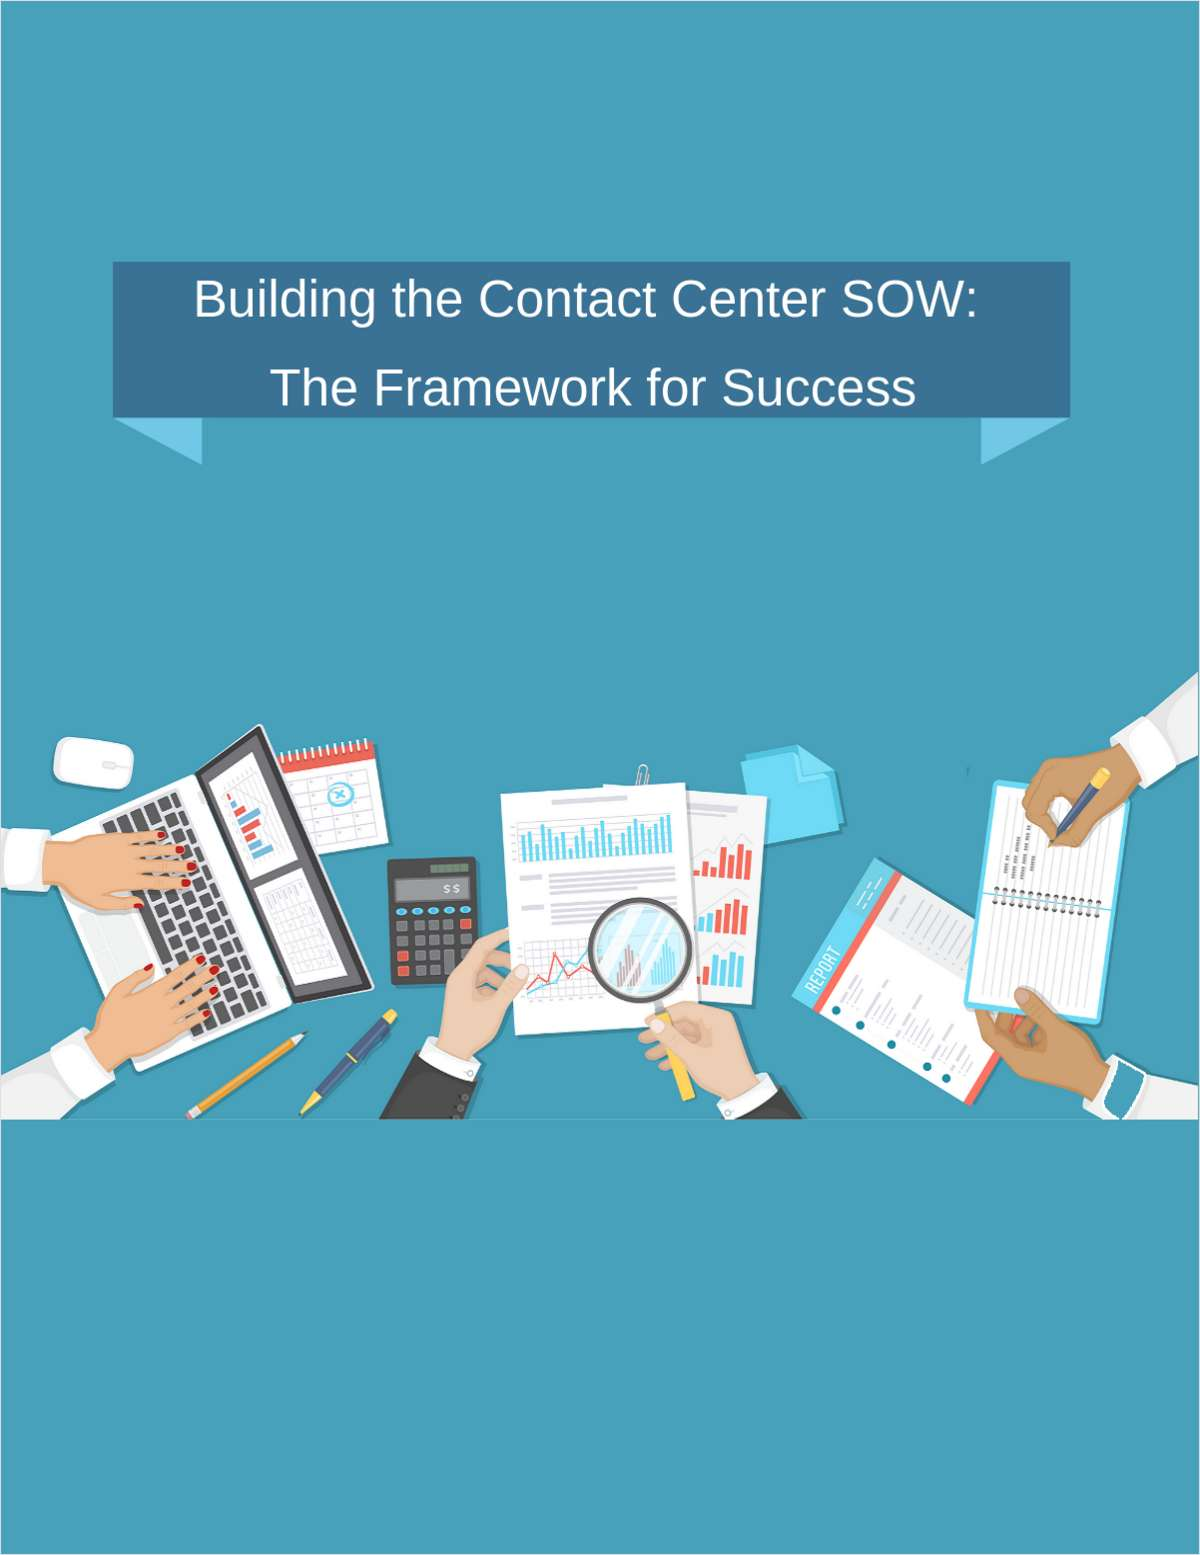 Building the Contact Center SOW: The Framework for Success